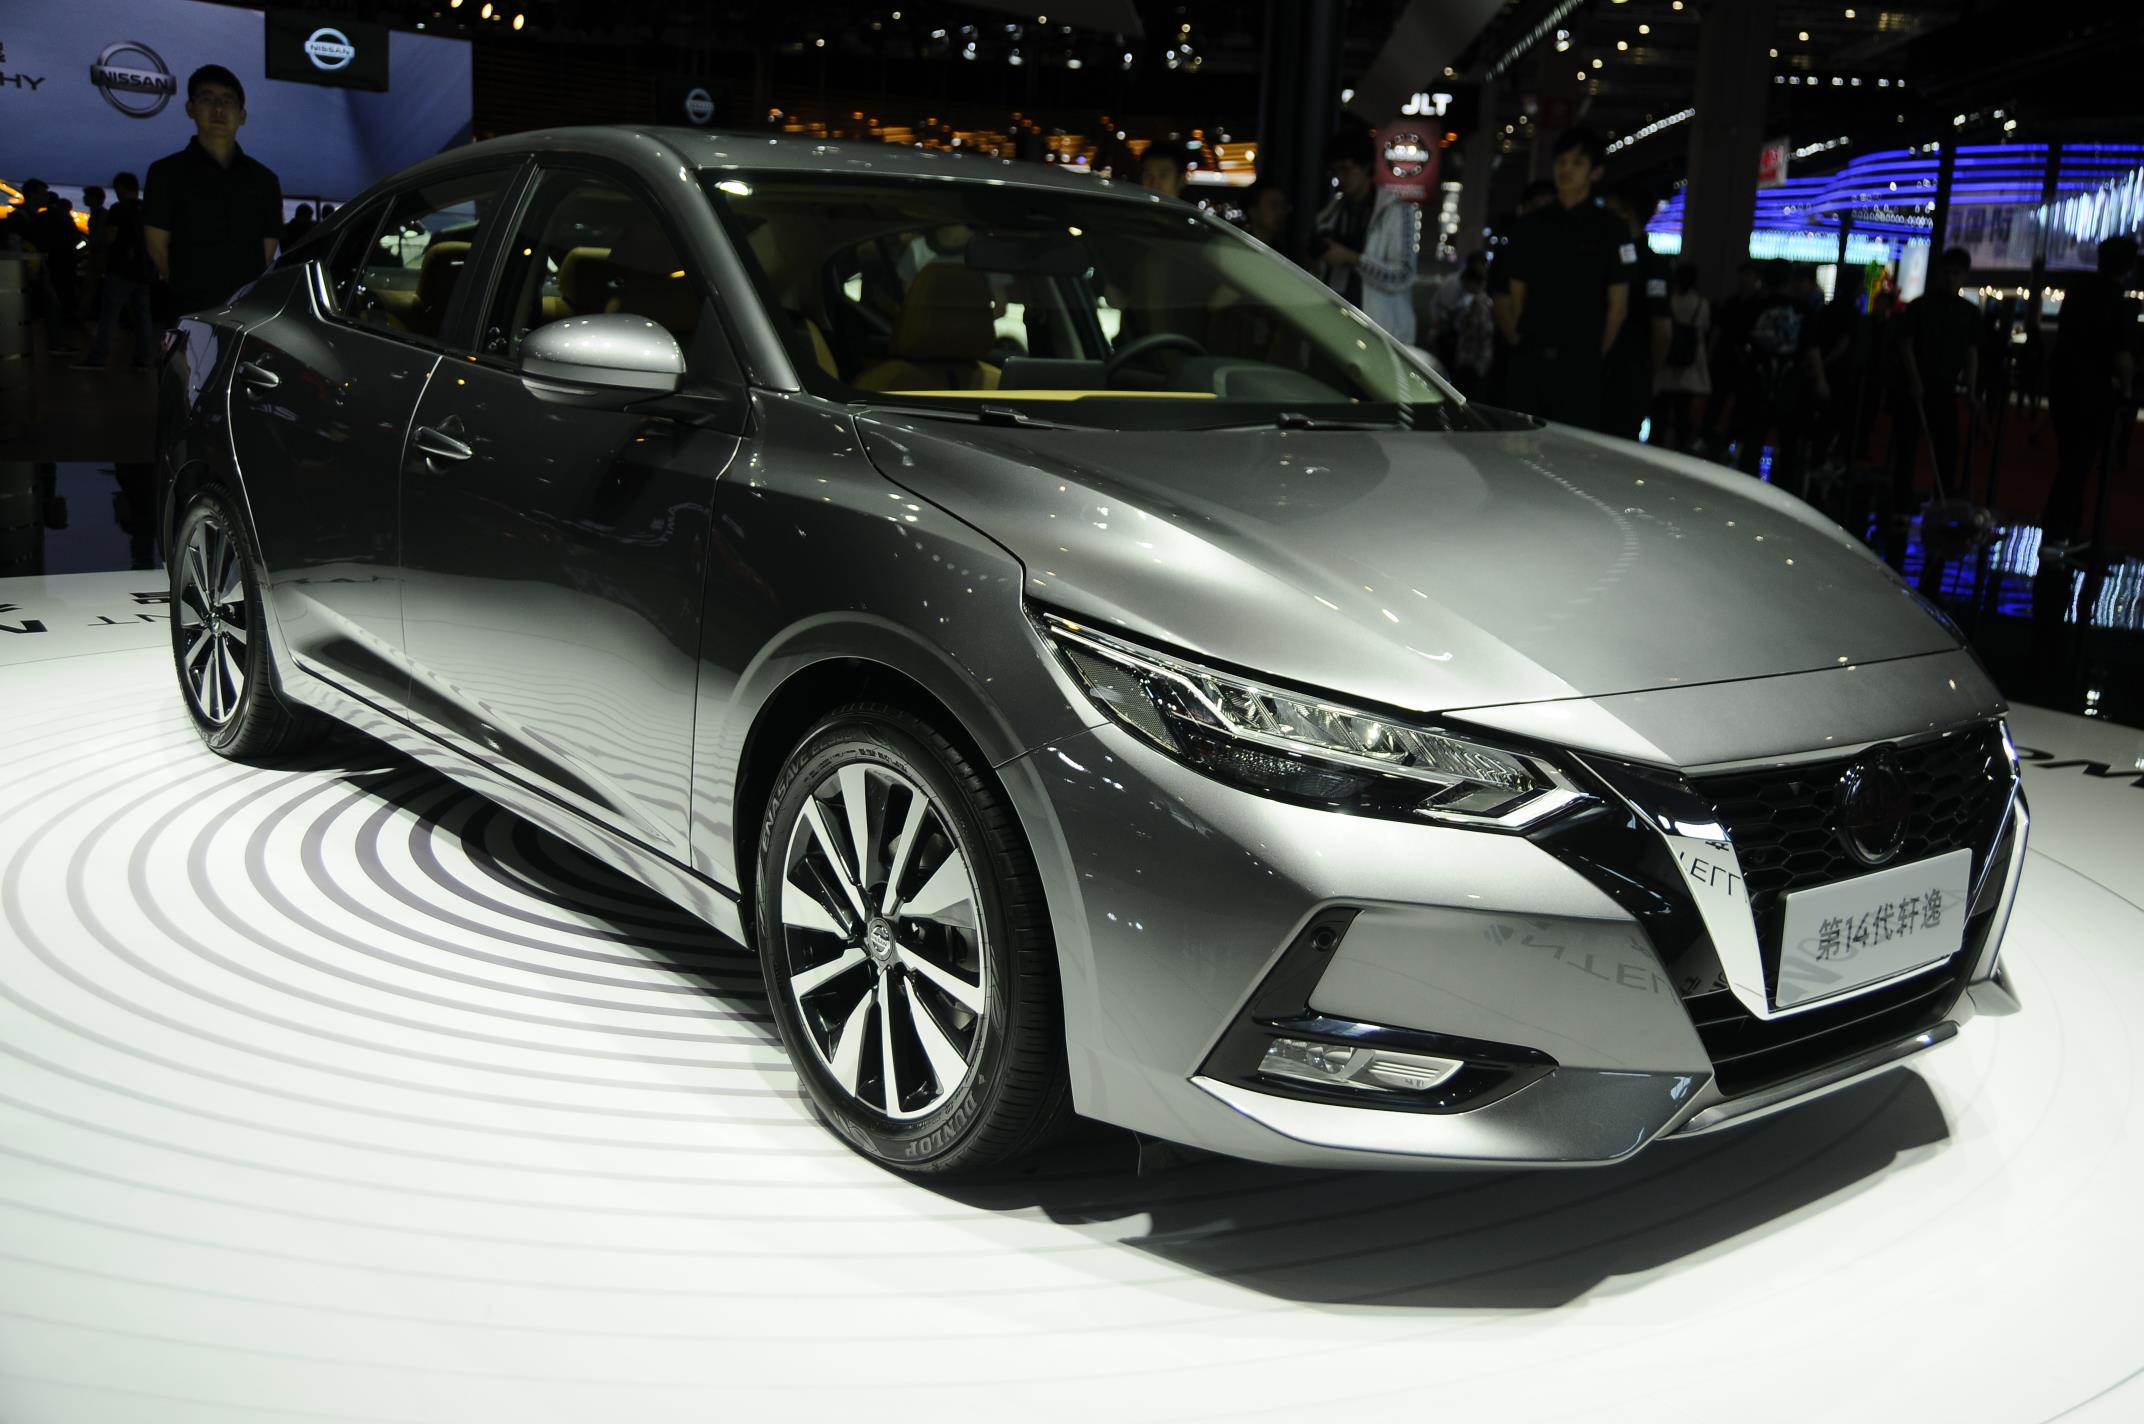 new nissan sentra is another sedan unveiled in china  see how he stayed  u2013 afaae